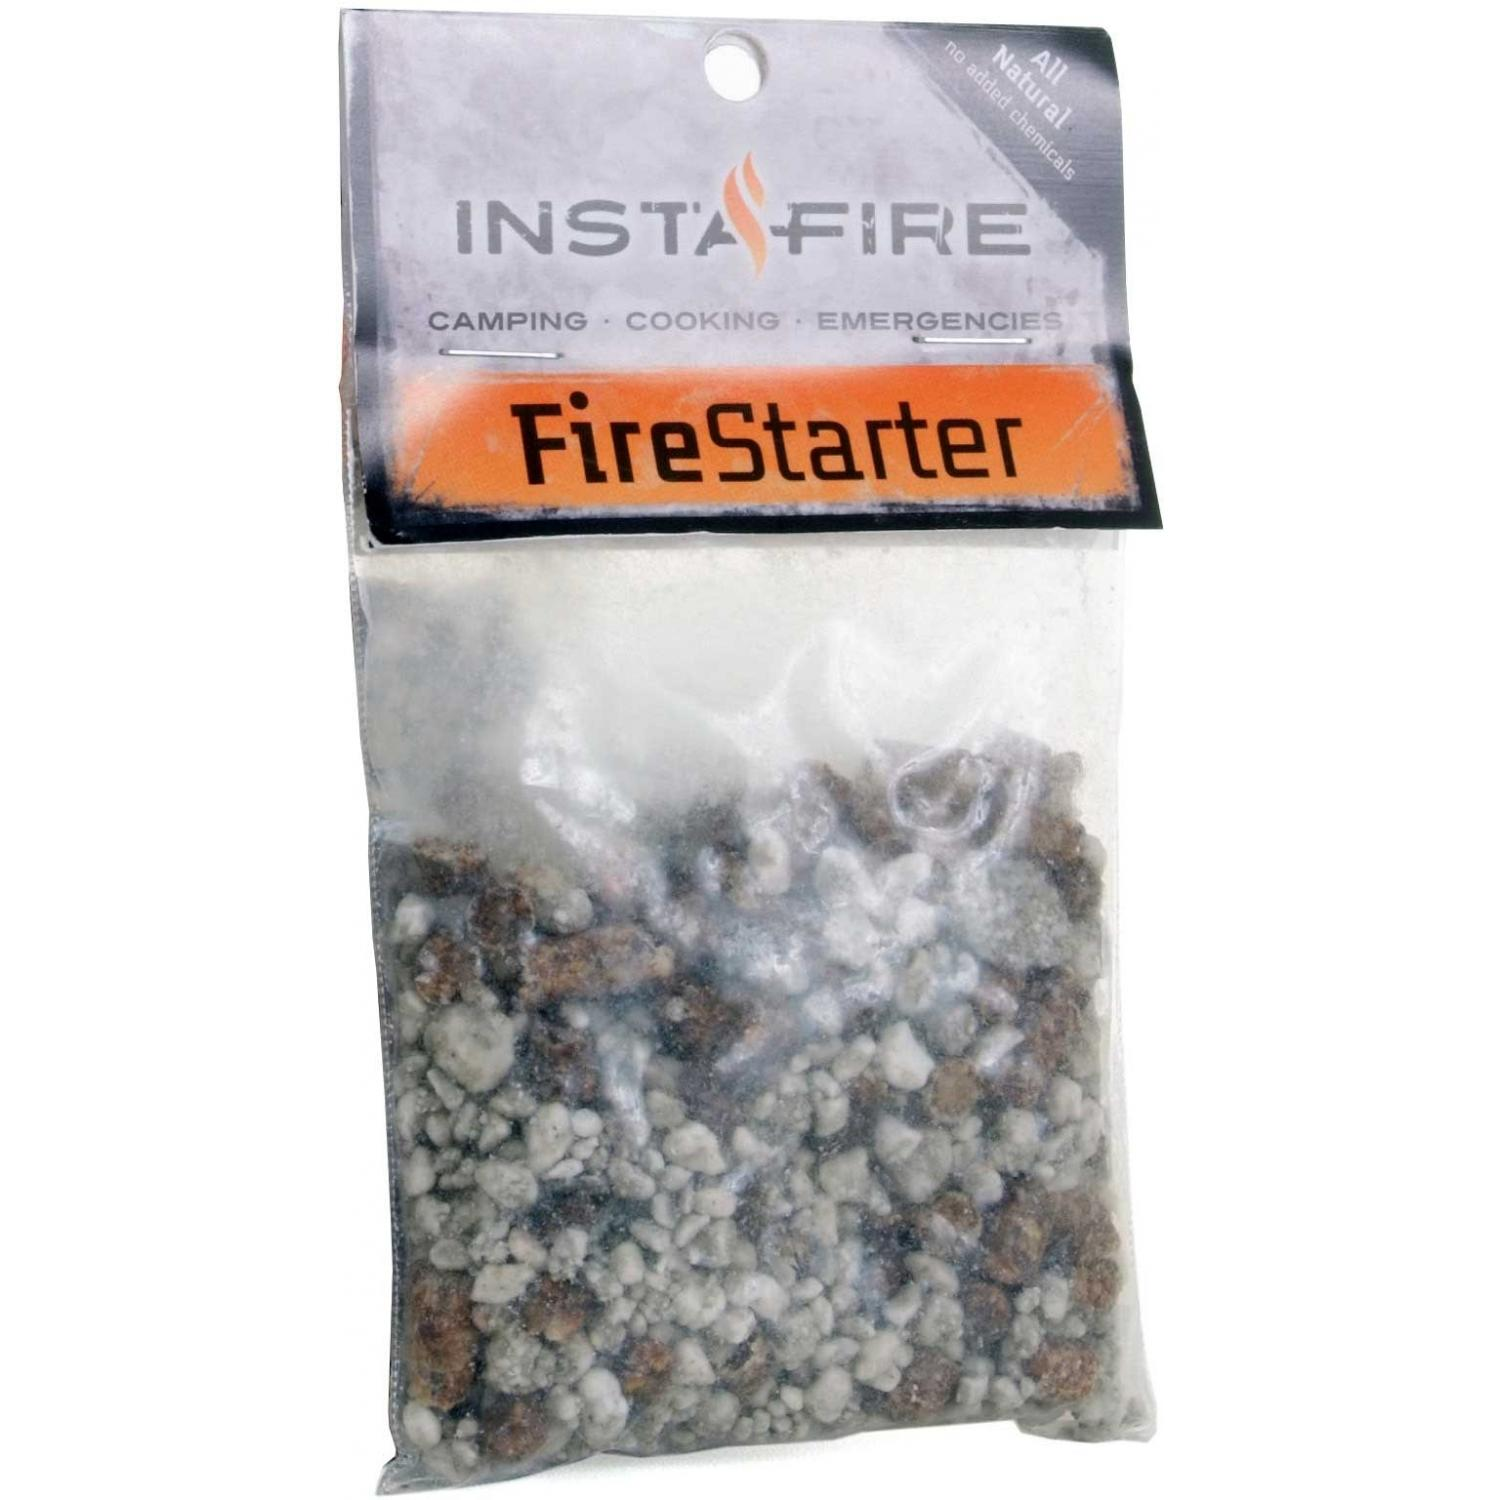 Insta-Fire Fire Starter & Emergency Cooking Fuel - Box of 24 Packets